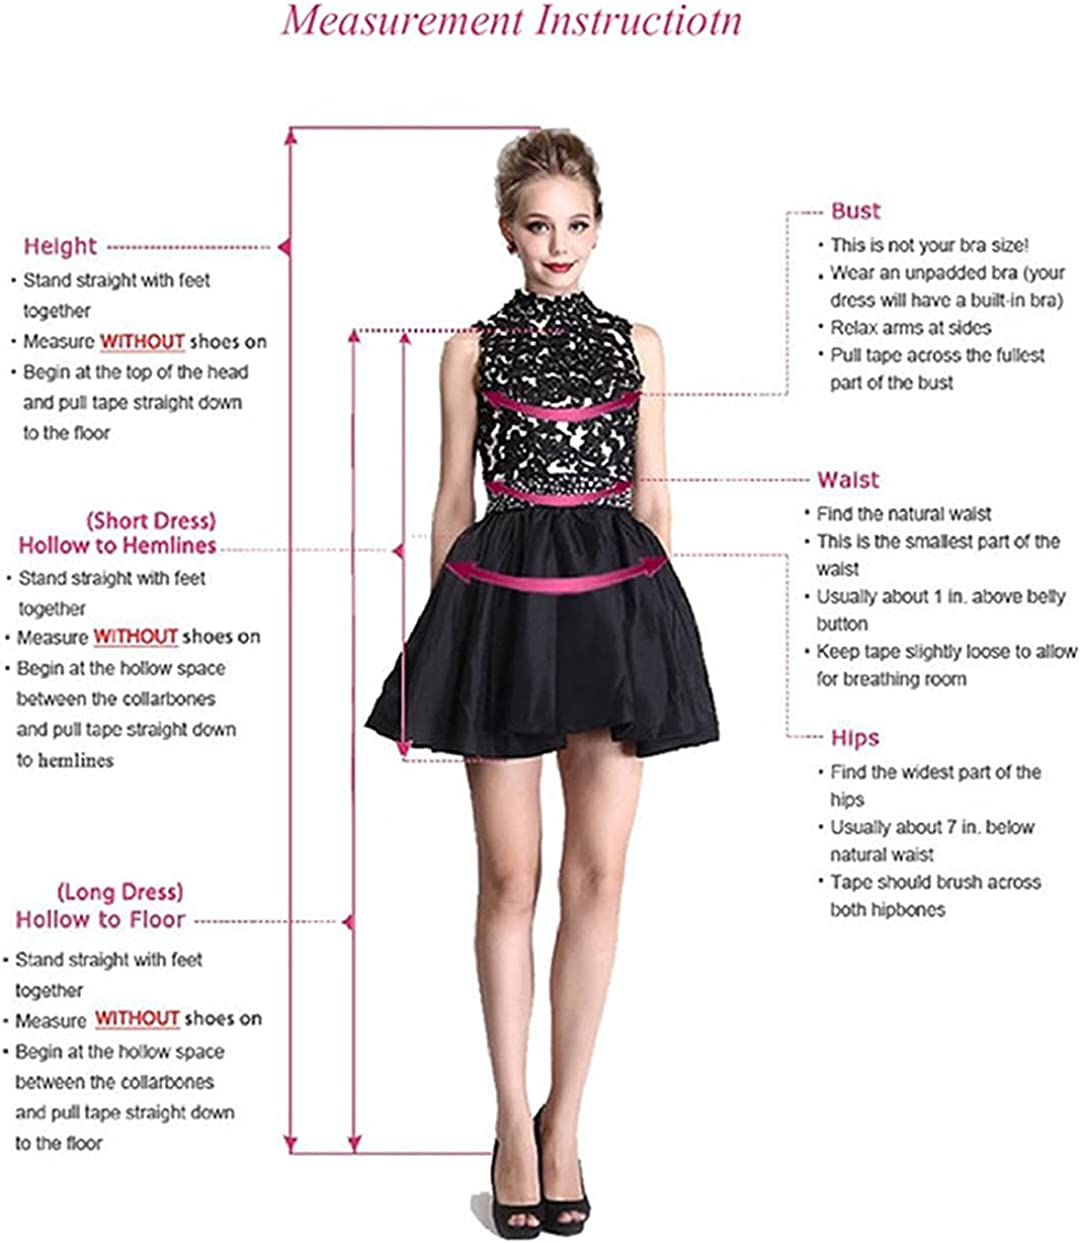 COEYOUES Off The Shoulder Homecoming Dresses for Teens Satin Short Prom Formal Evening Ball Gown